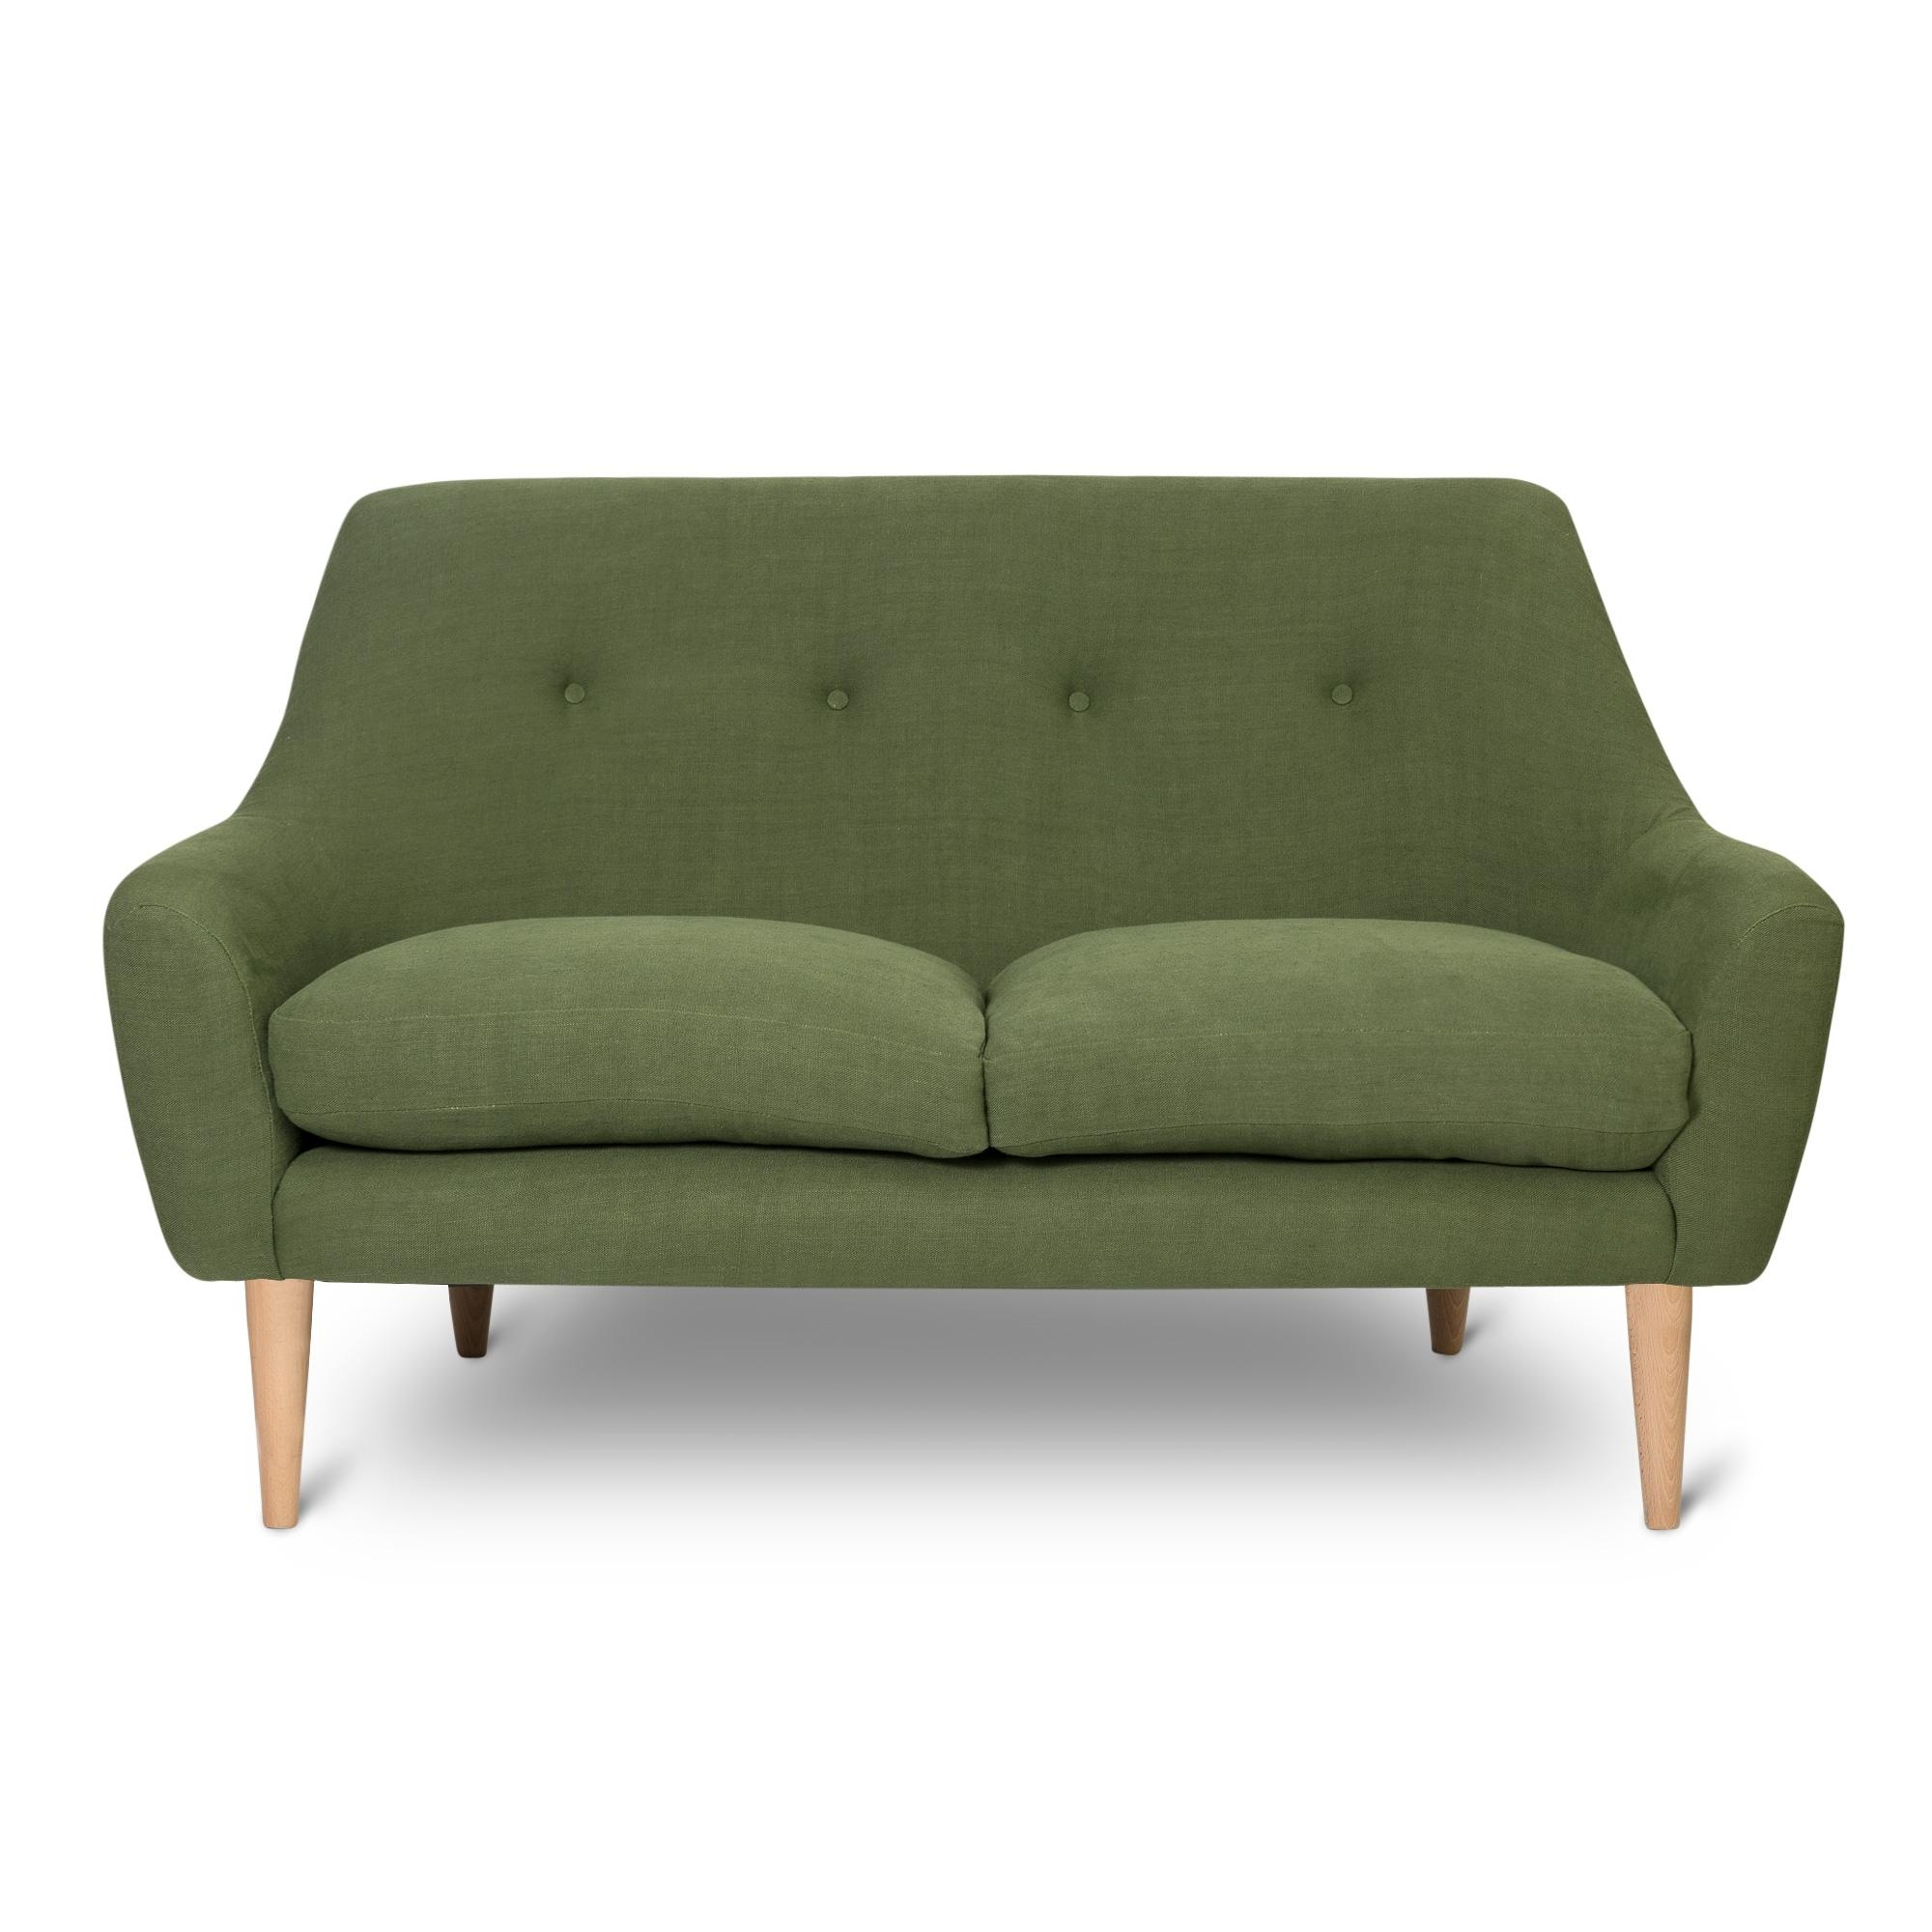 Green 1958 Two Seater Sofa | Oliver Bonas Inside Two Seater Sofas (Image 8 of 20)